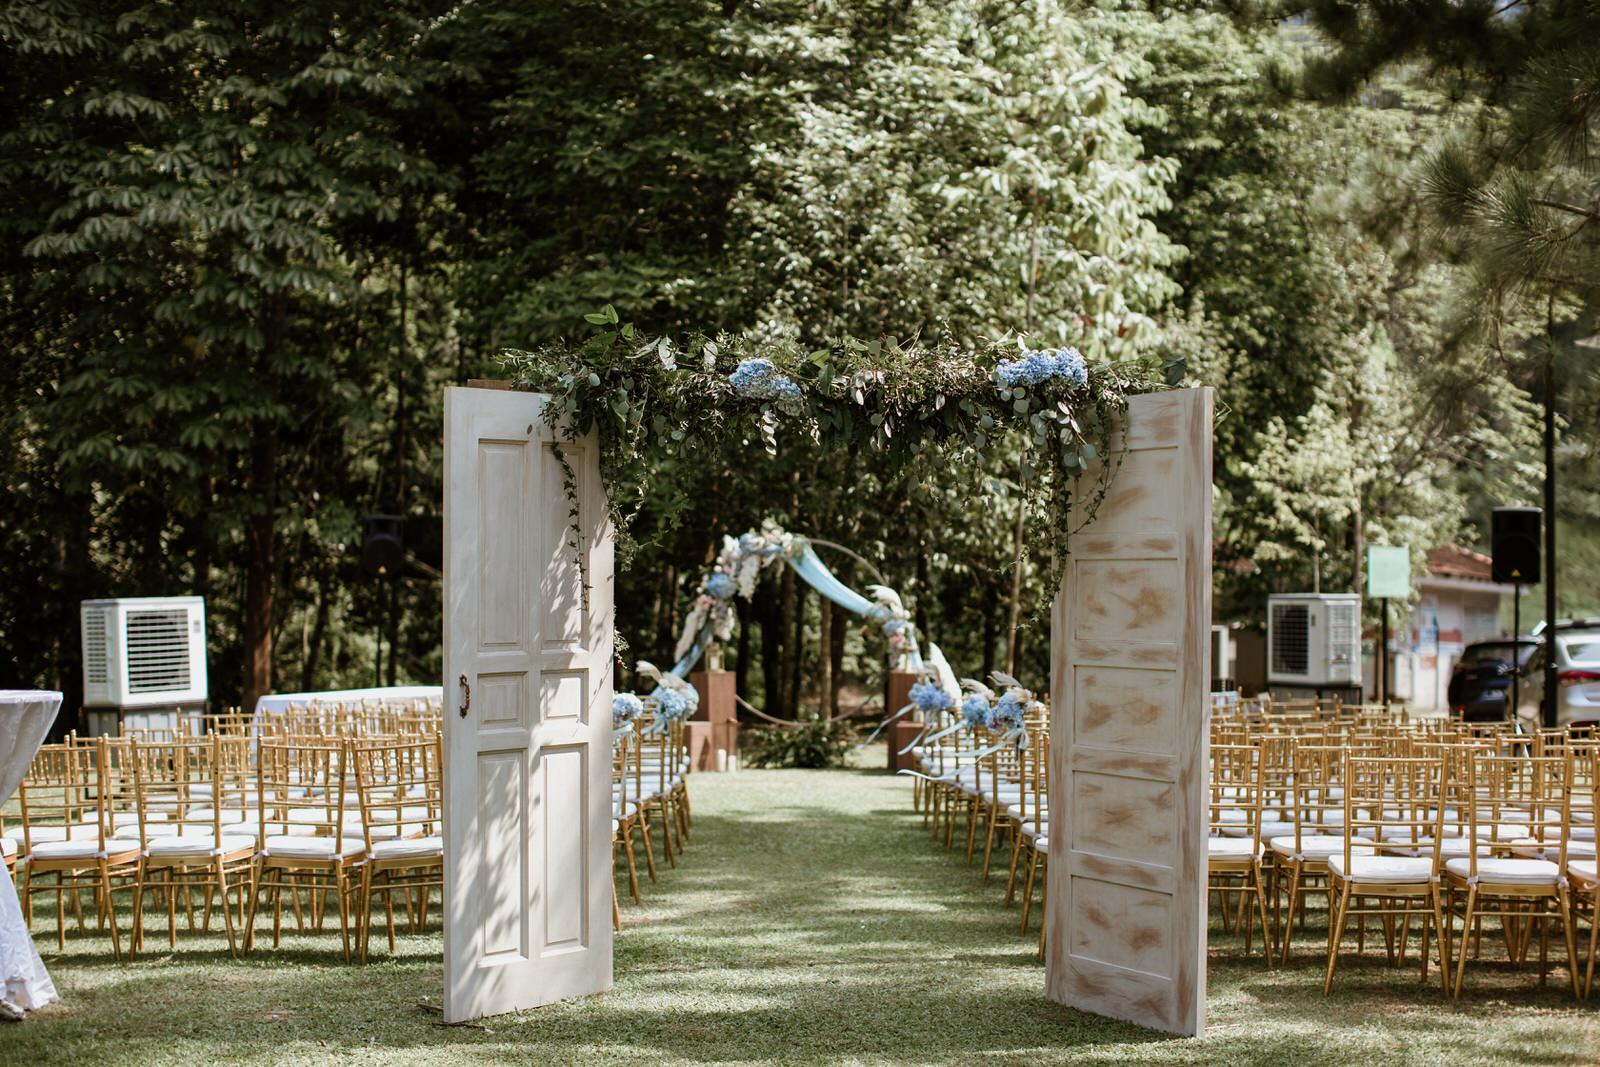 Tanarimba Rustic Garden Weding Janda baik Decoration Wooden Open Door Cliff Choong Photography